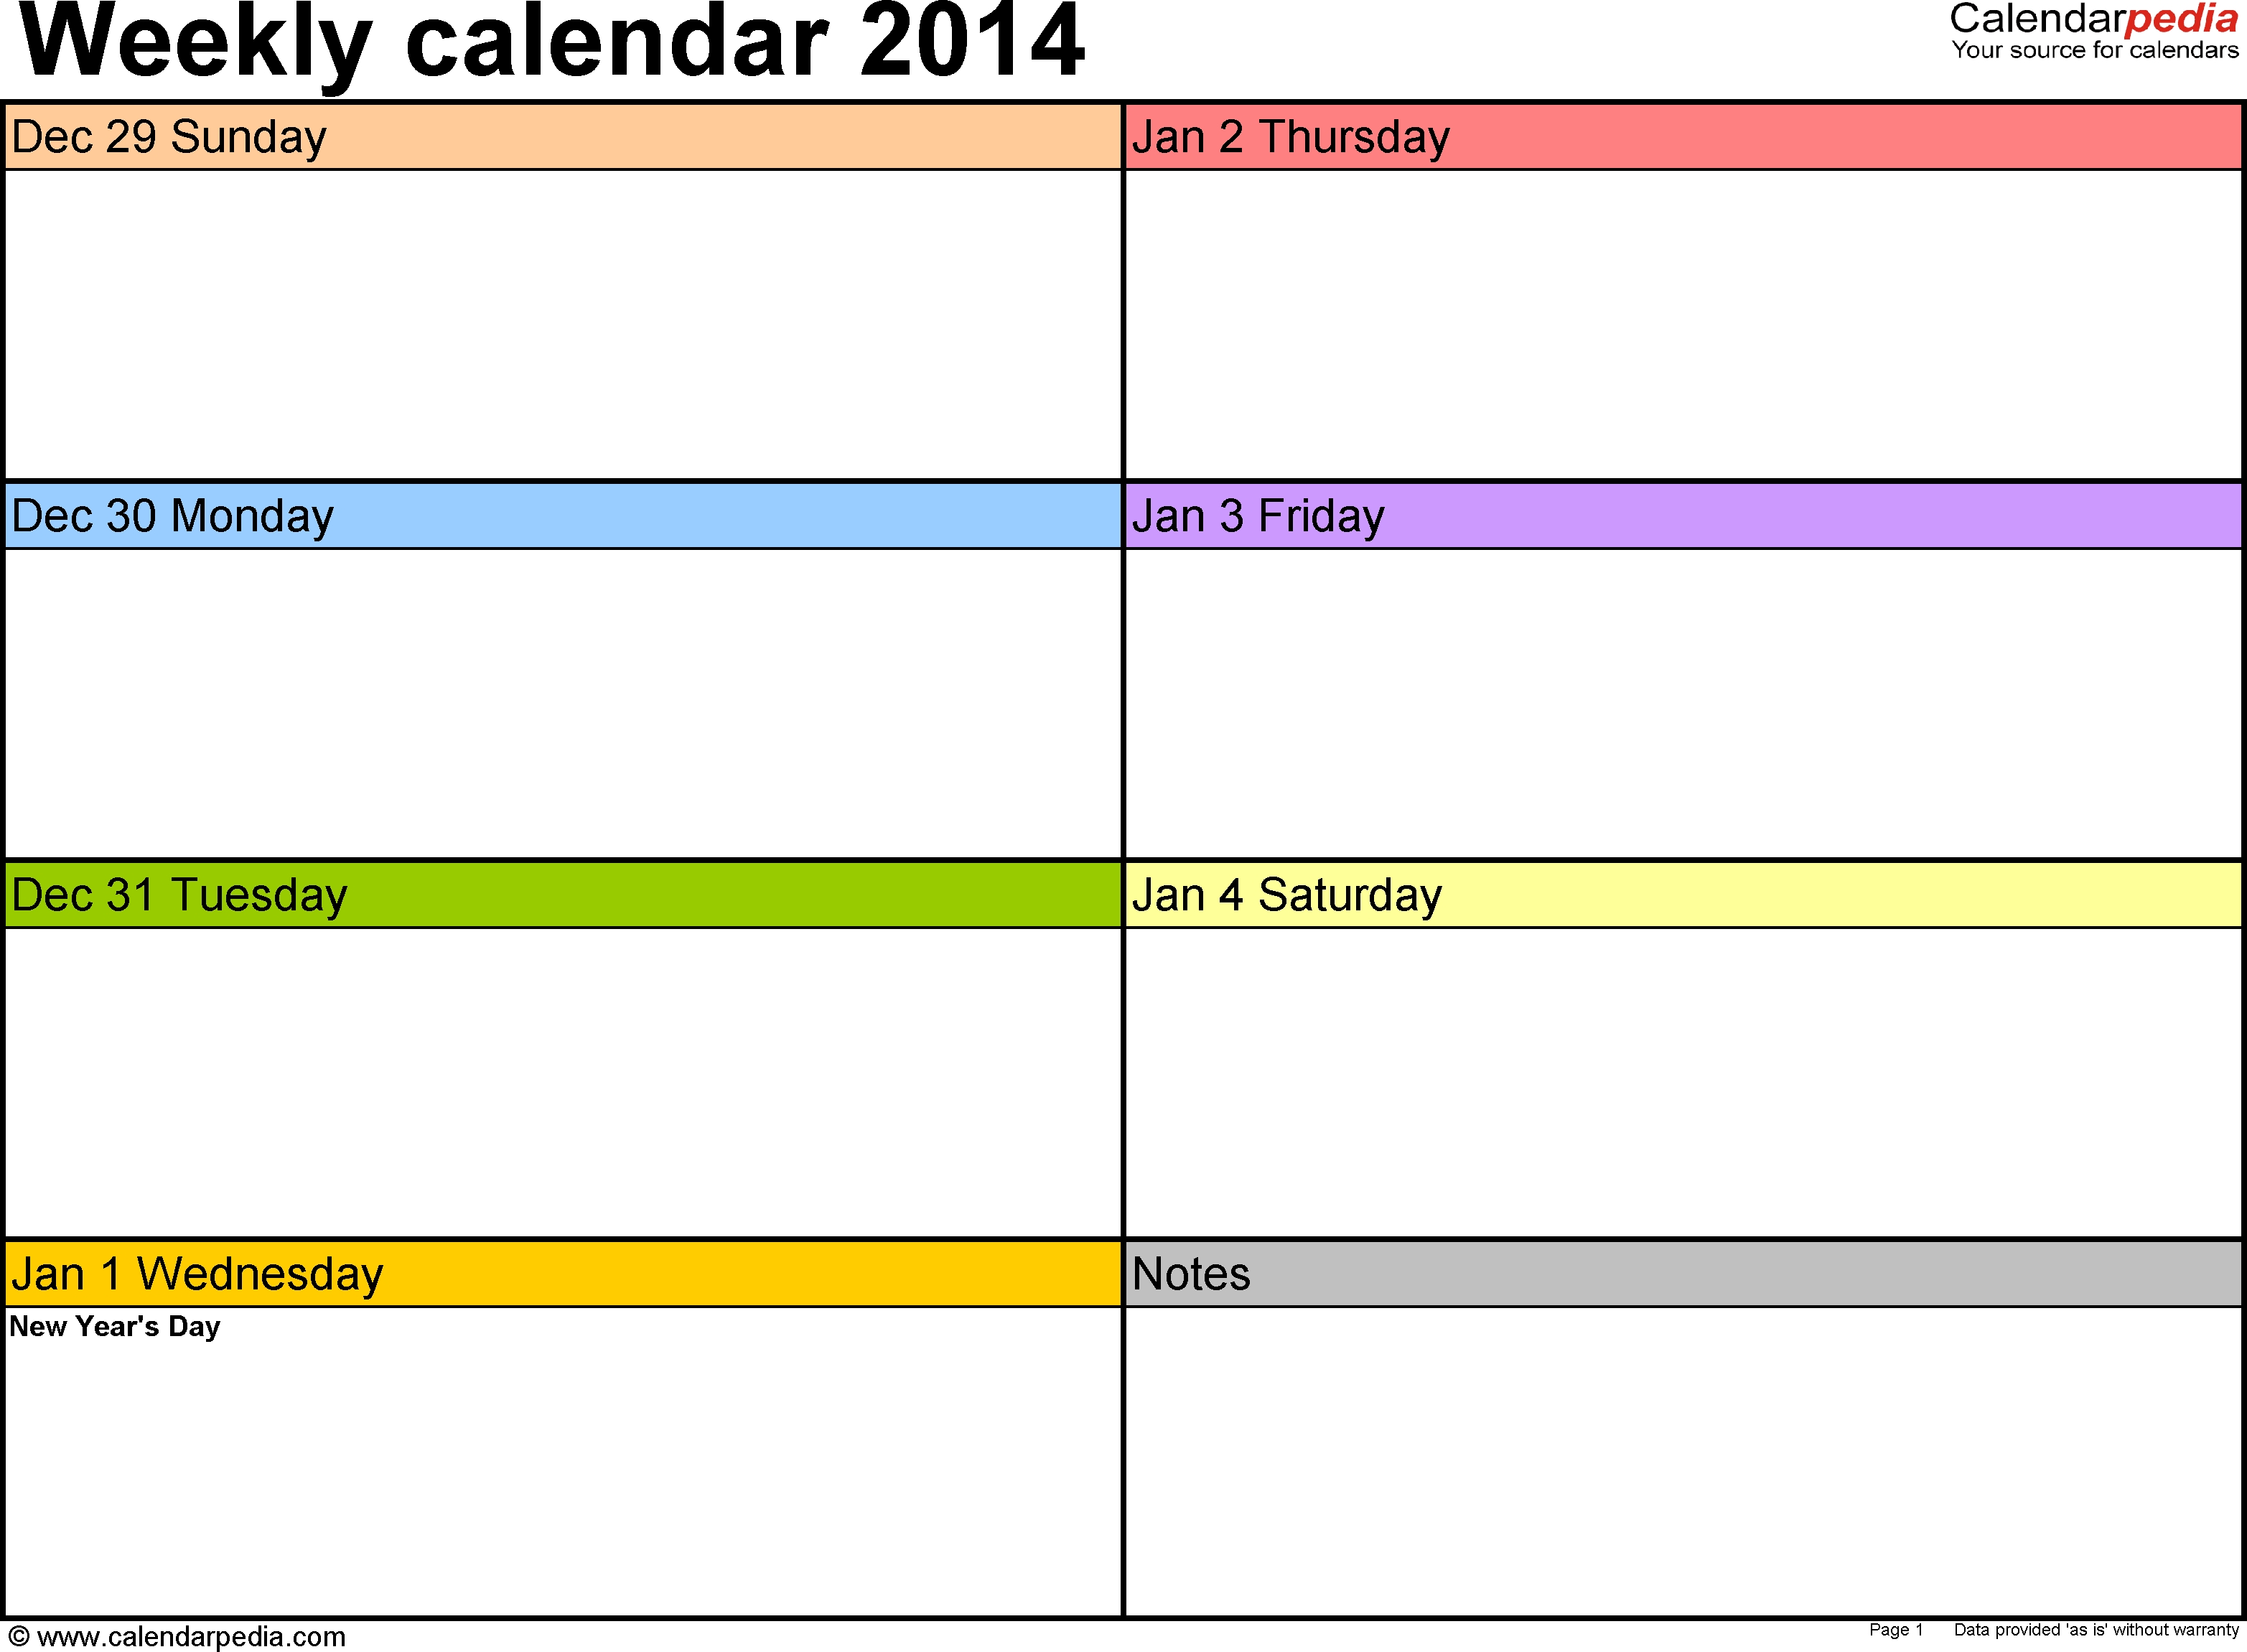 Weekly Calendar 2014 For Excel 4 Free Printable Templates